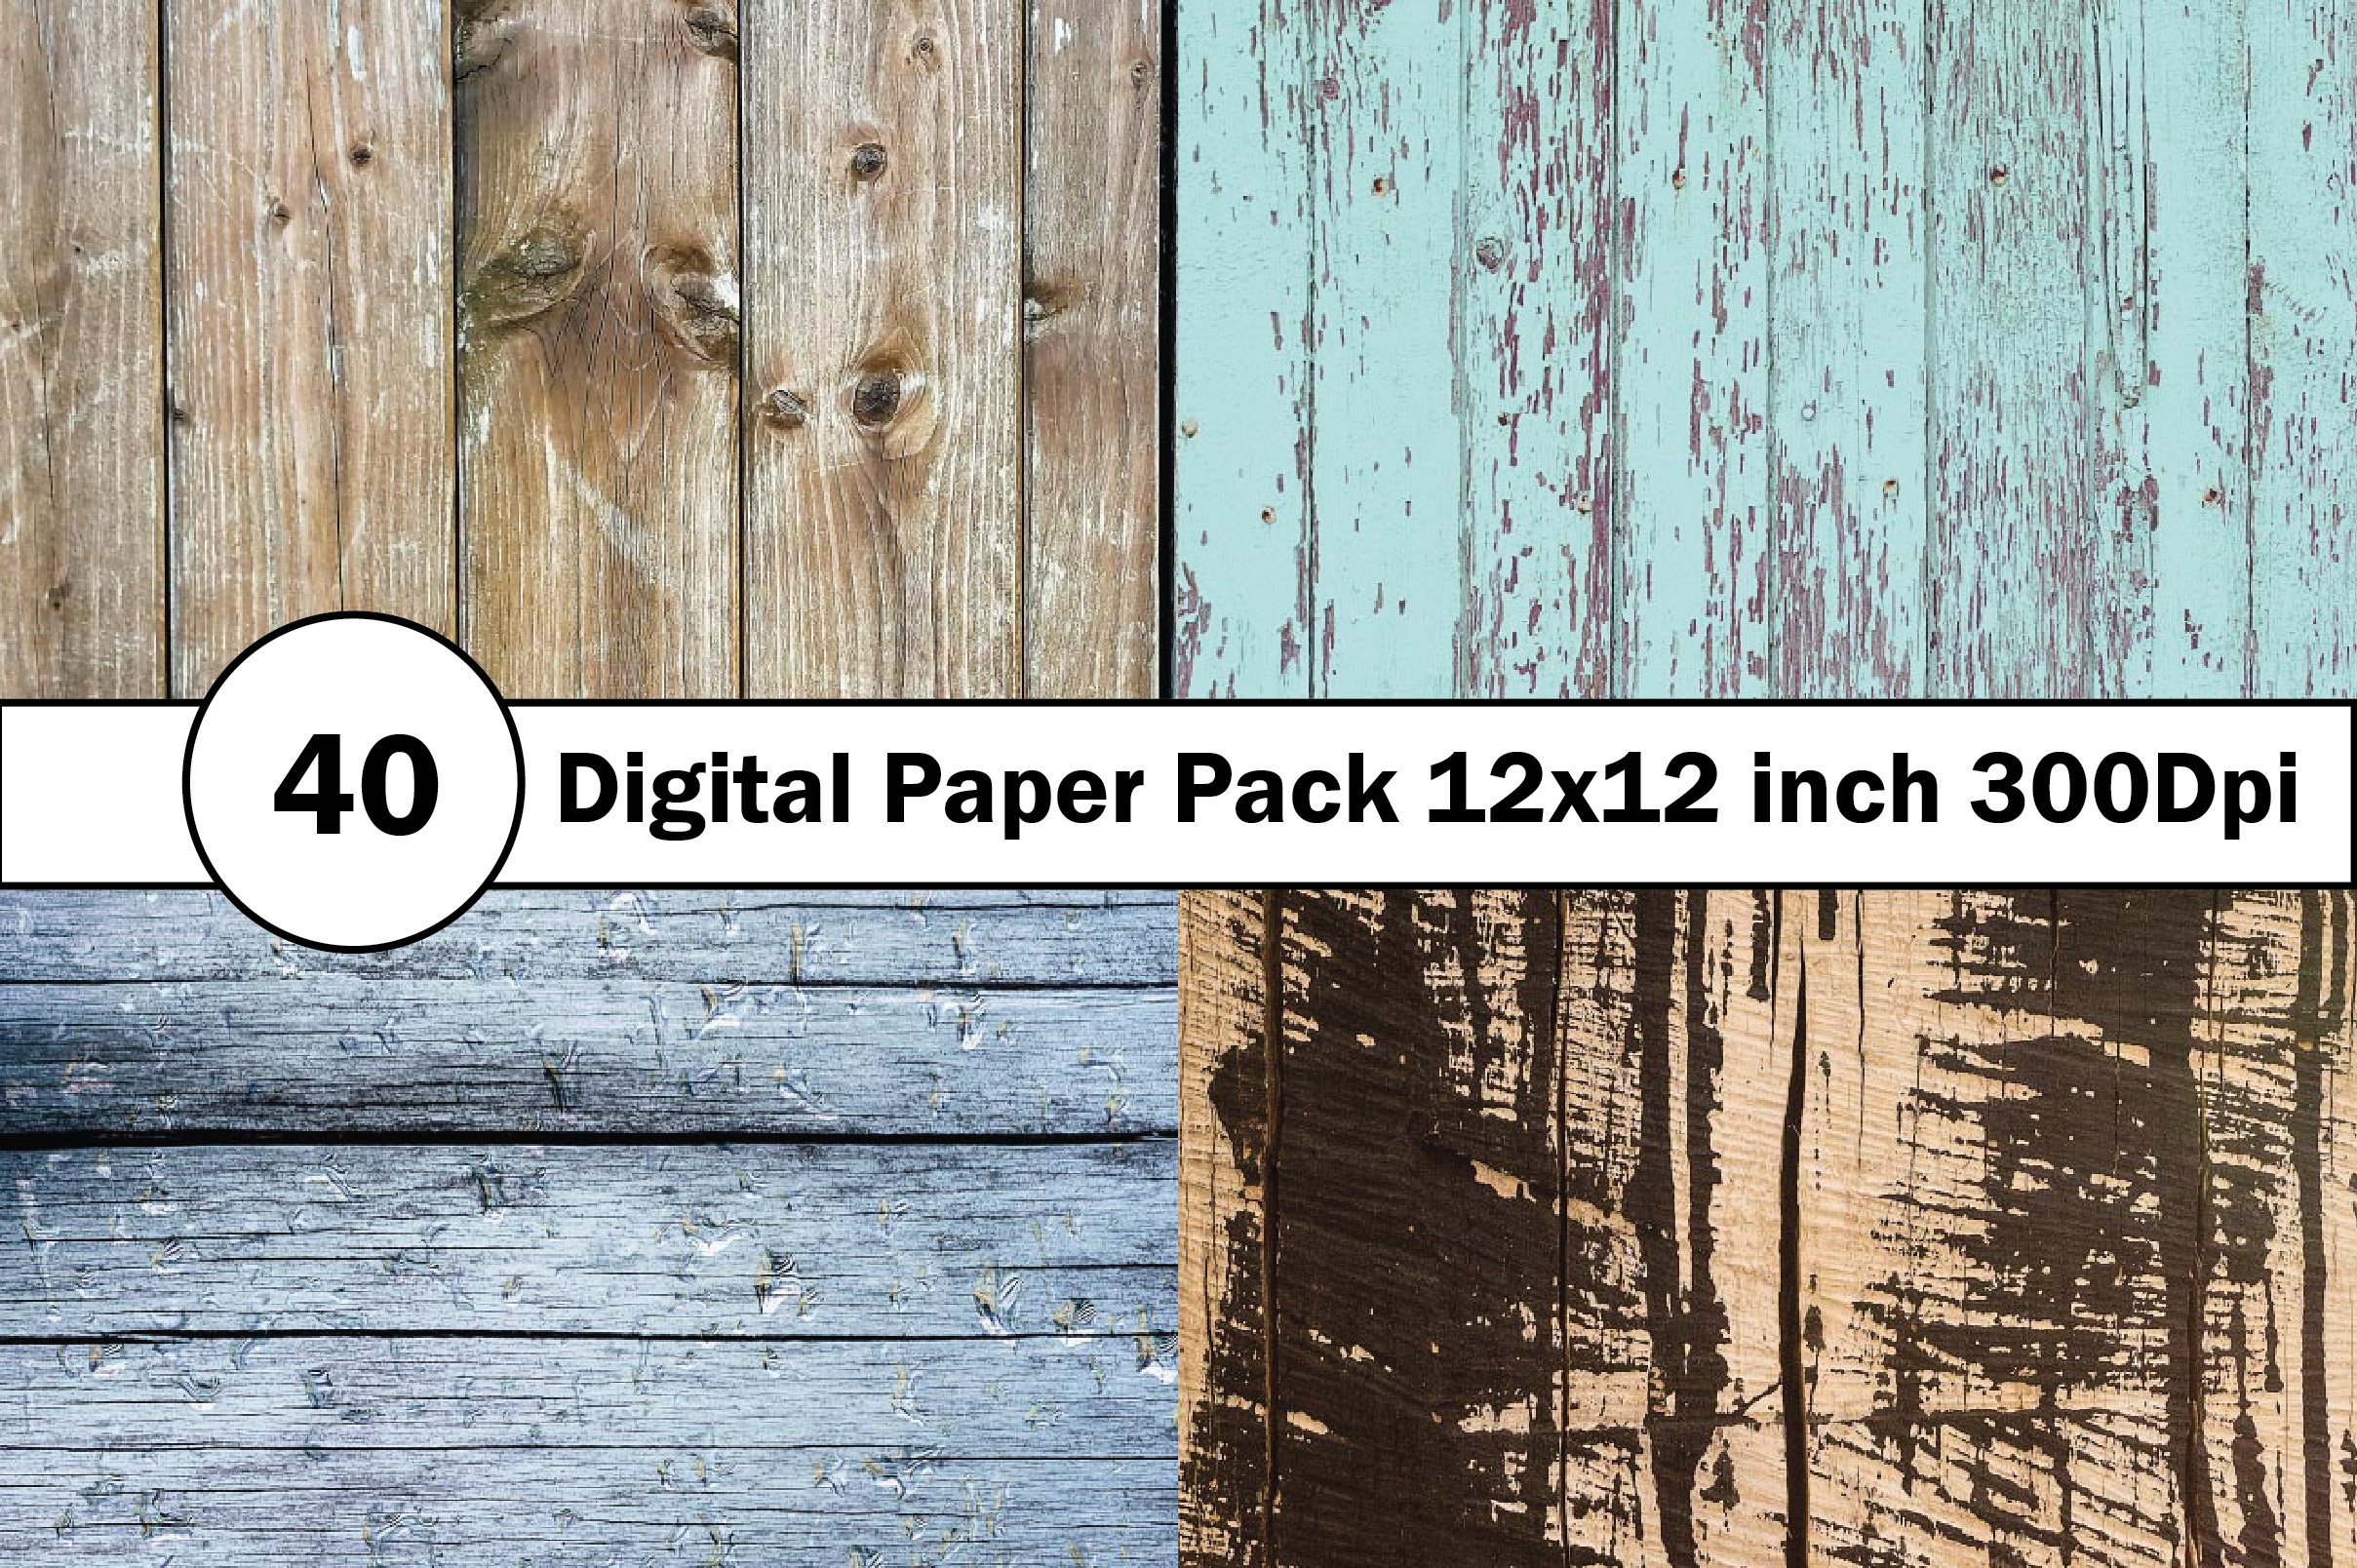 40 Digital Paper Pack 12x12 inch 300 Dpi example image 9